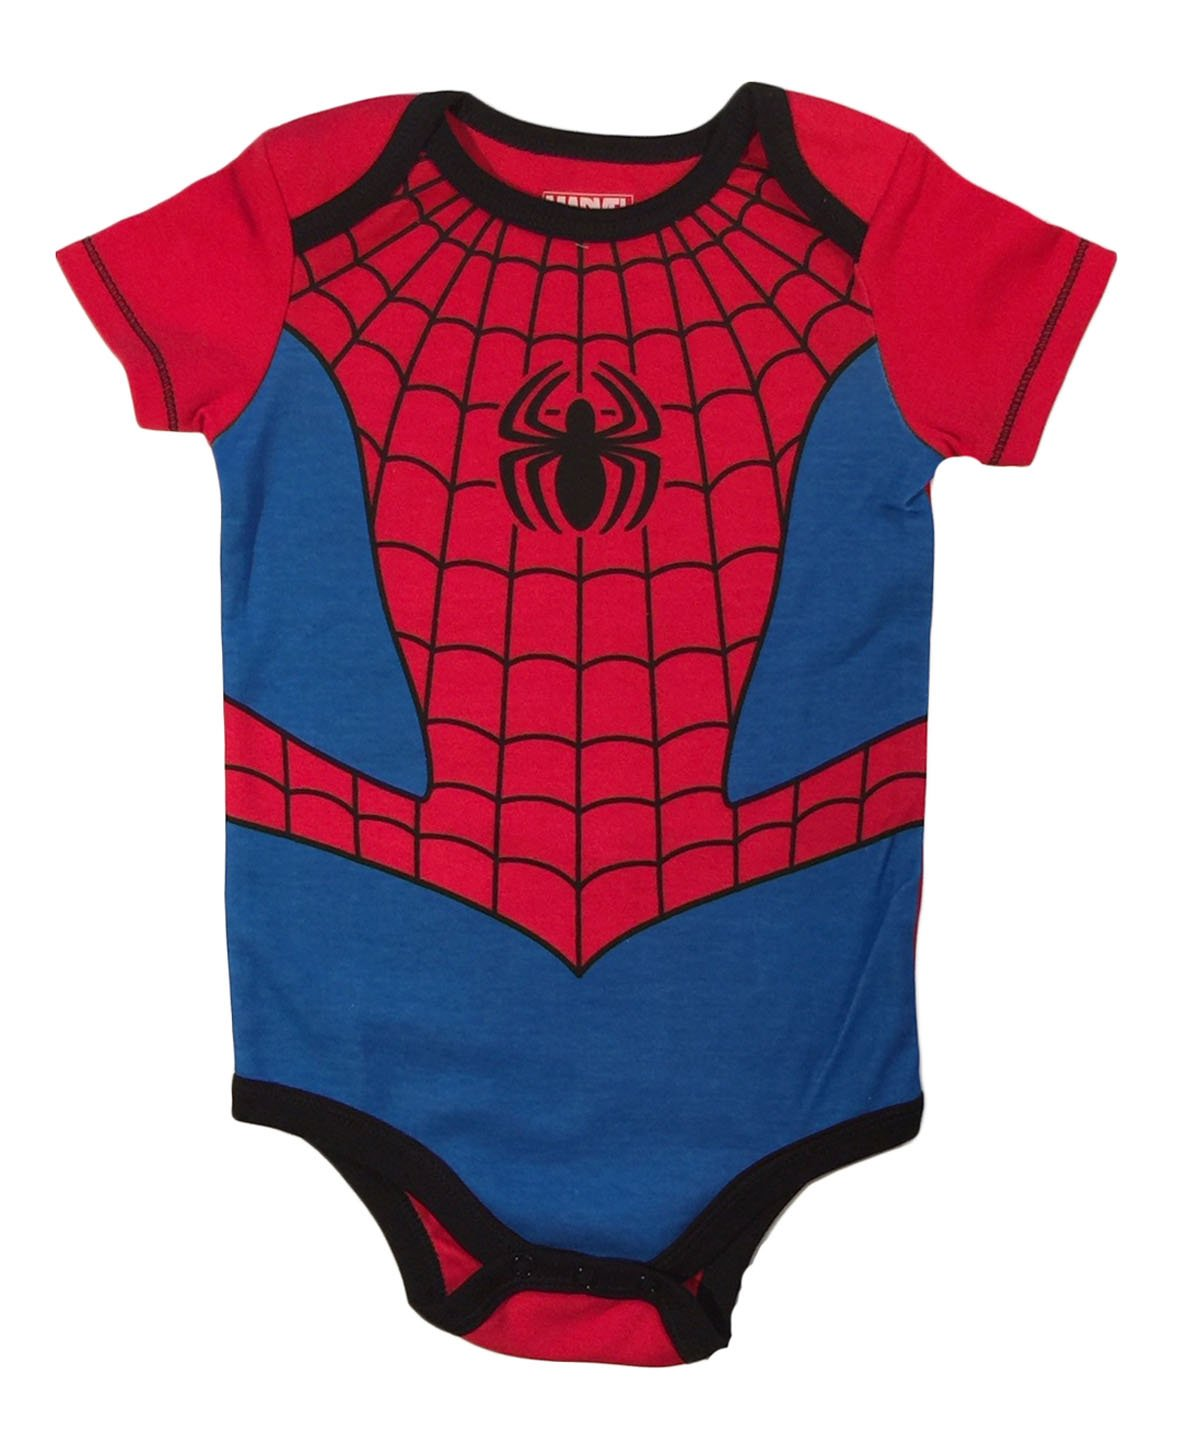 Marvel Spiderman Baby Boys Bodysuit Creeper Dress Up Outfit (6-9 Months)